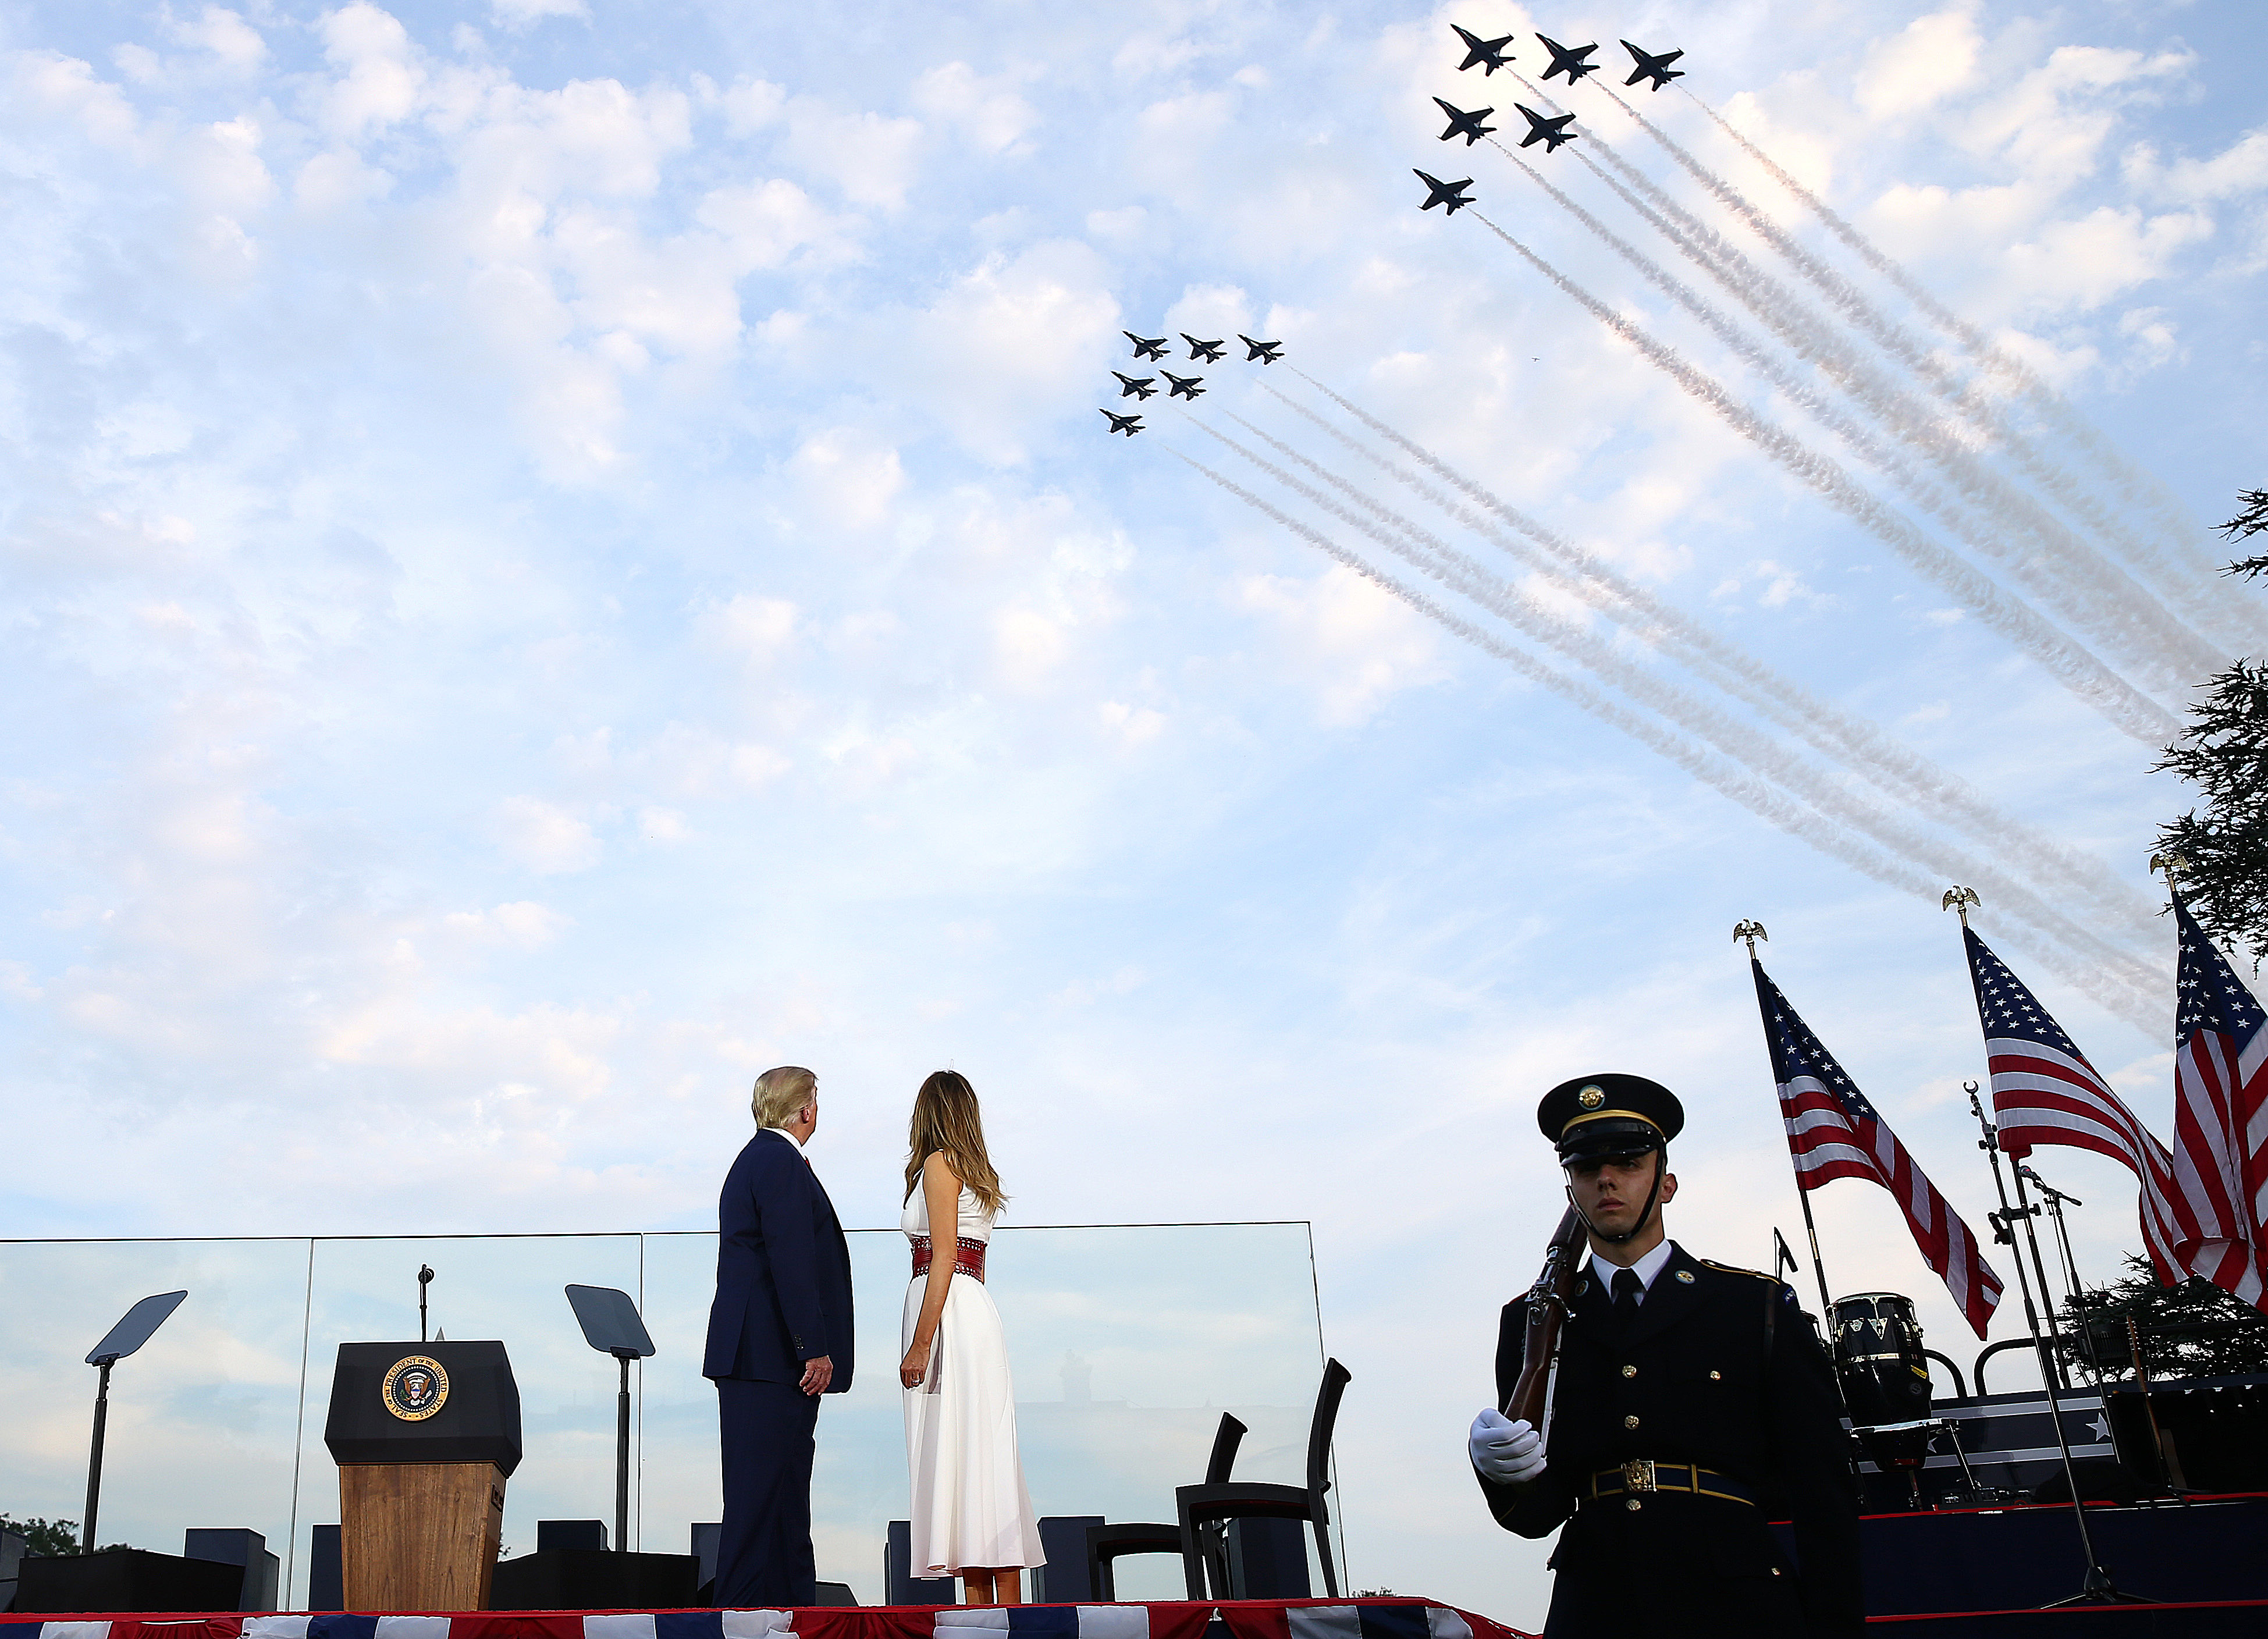 "WASHINGTON, DC - JULY 04: U.S. President Donald Trump and first lady Melania Trump watch the U.S. Navy Blue Angels and U.S. Air Force Thunderbirds perform a flyover near the White House on July 04, 2020 in Washington, DC. U.S. President Donald Trump is hosting a ""Salute to America"" celebration that includes flyovers by military aircraft and a large fireworks display. (Photo by Tasos Katopodis/Getty Images)"